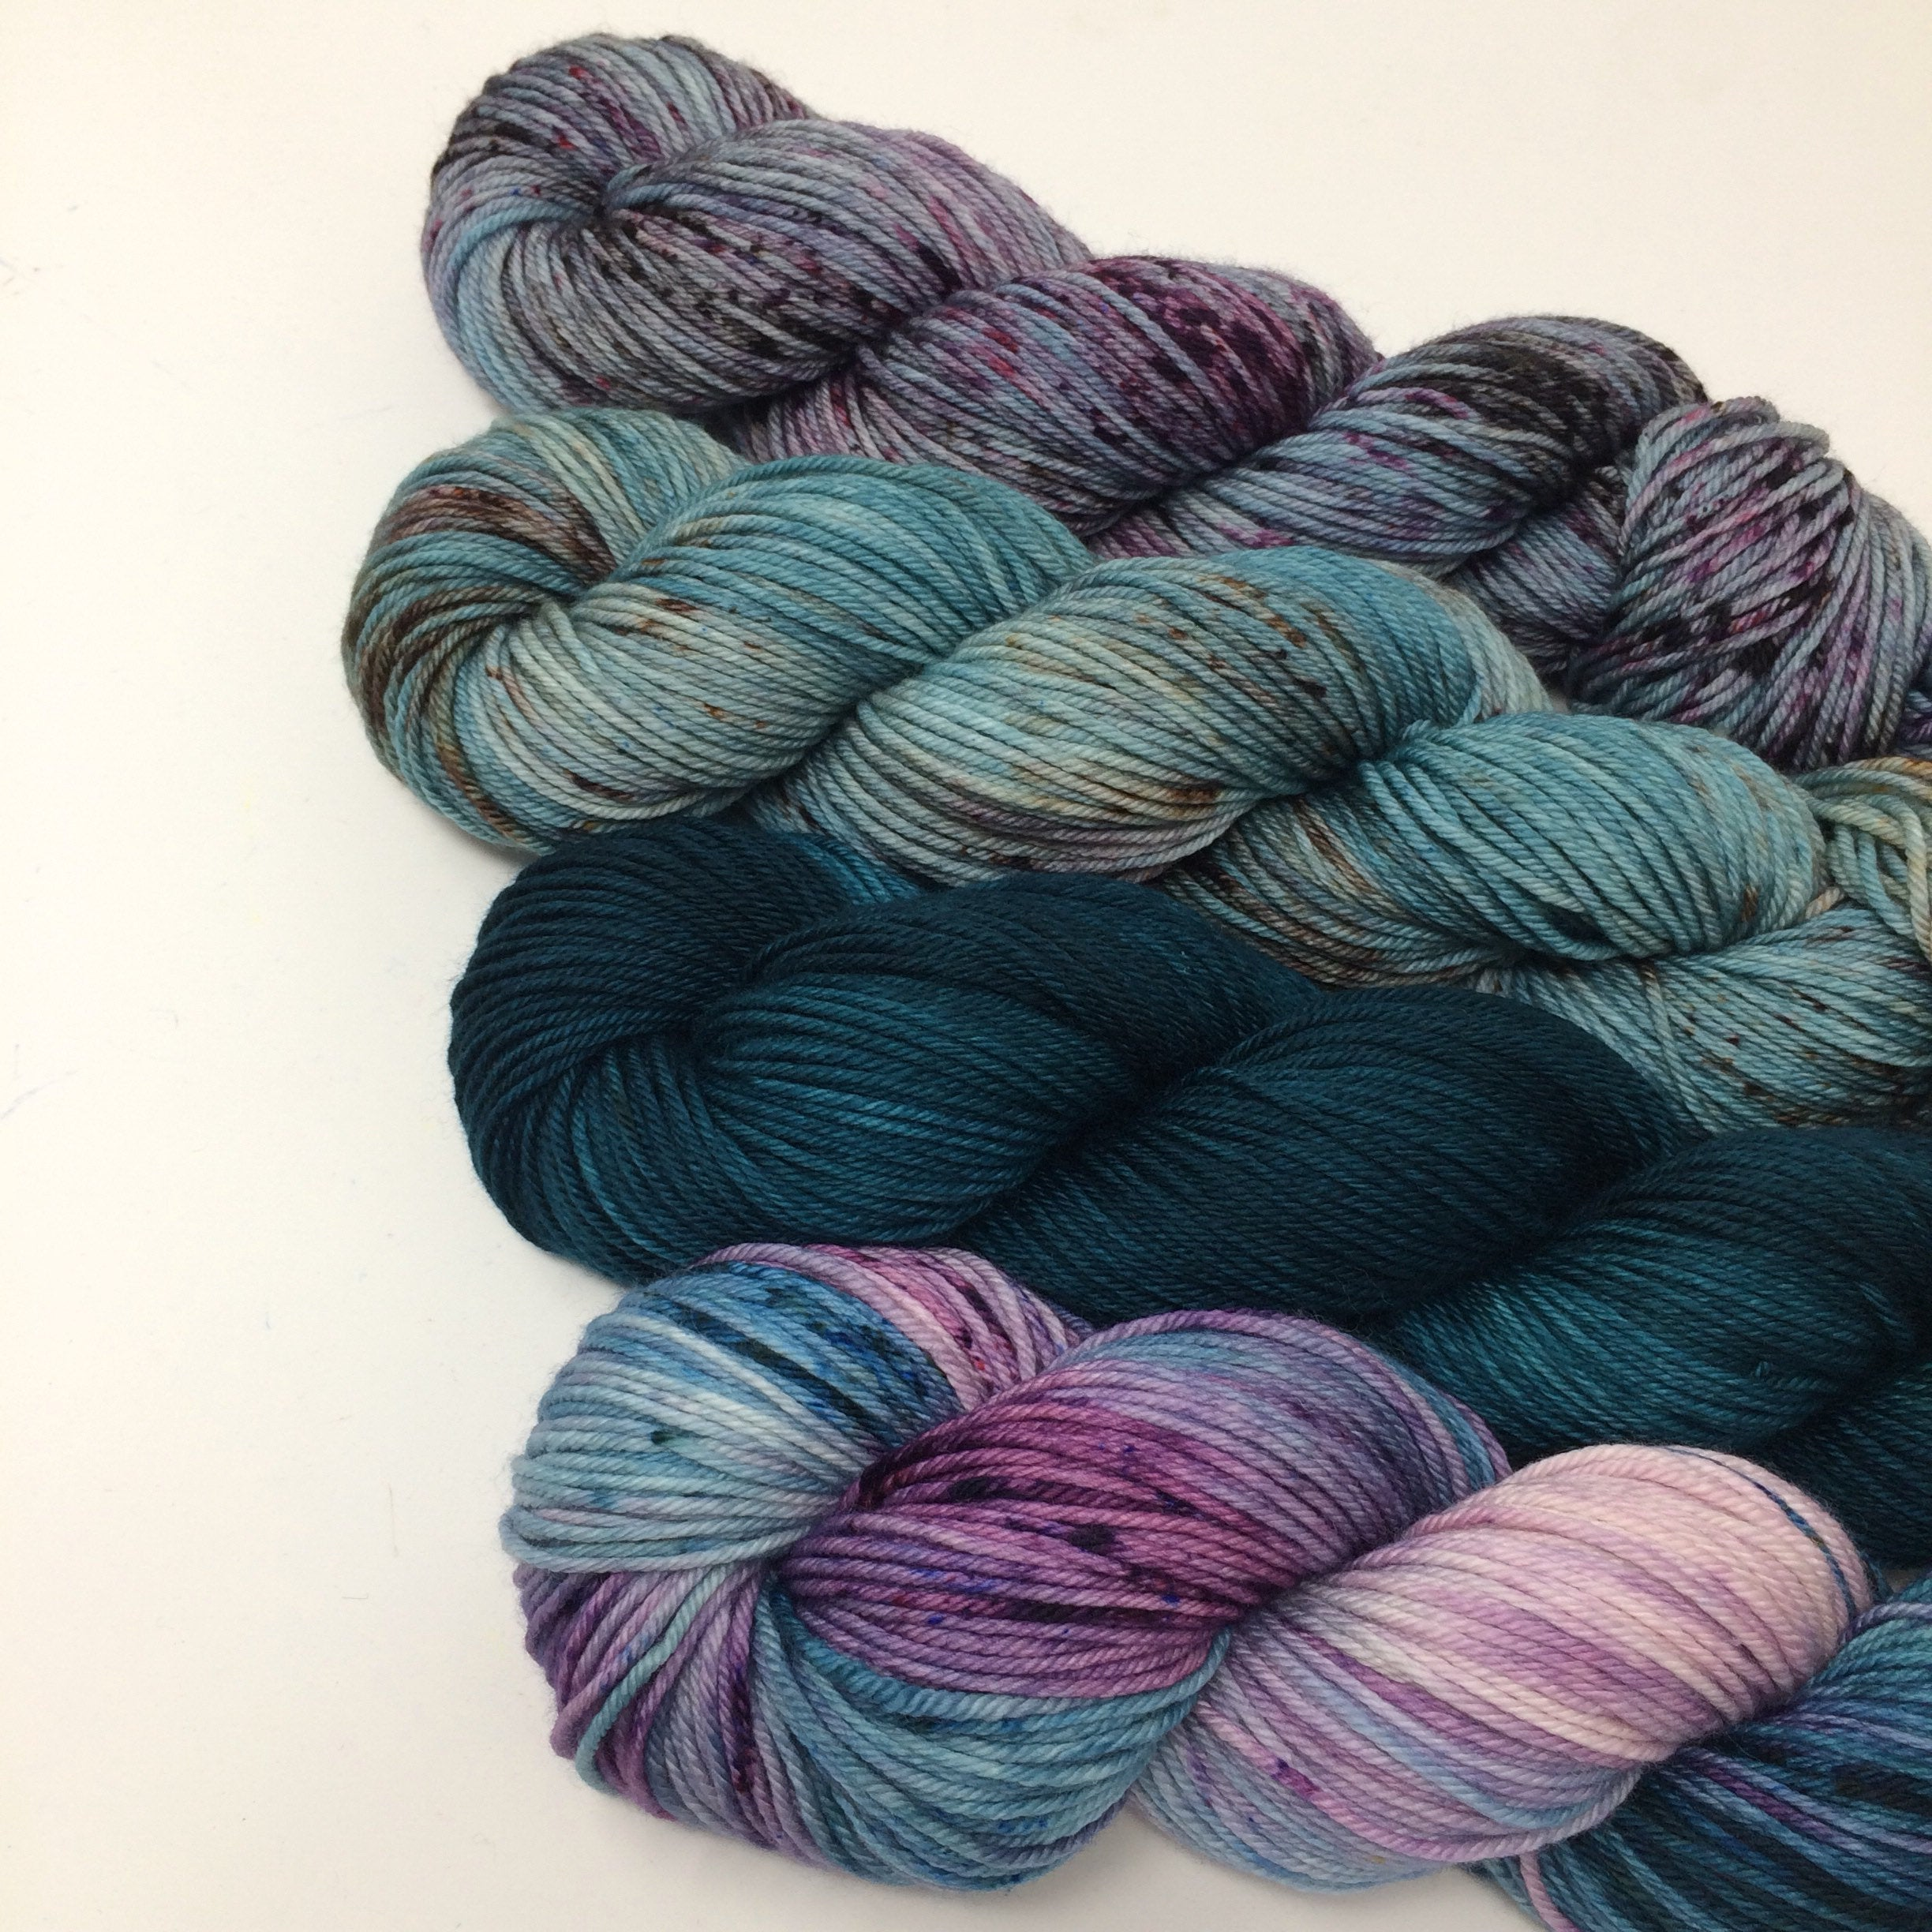 Fade Sets - 2,000 yards - in delightful dk - Mystic Moon